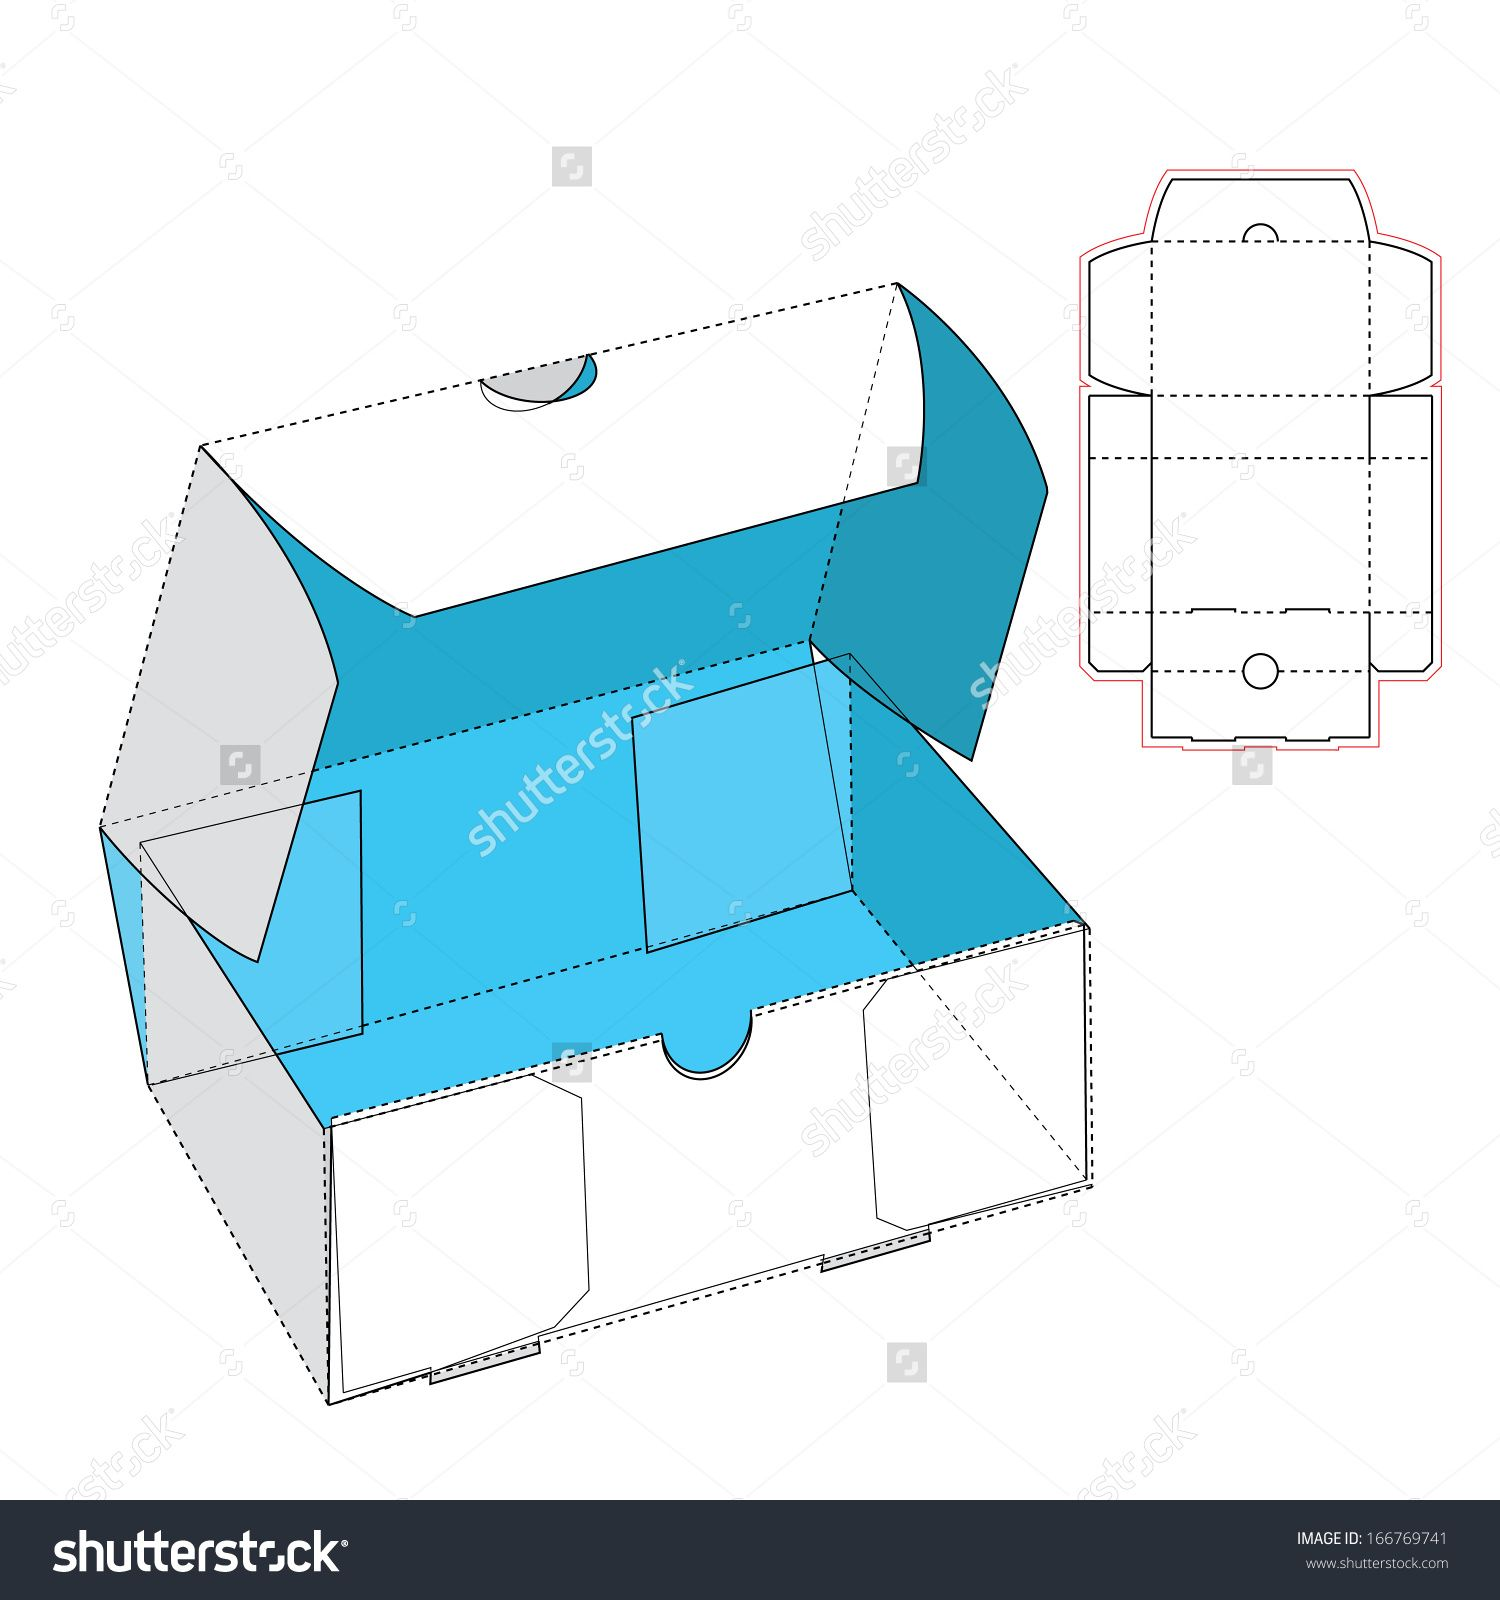 Box with flip lid and blueprint layout stock vector illustration box with flip lid and blueprint layout stock vector illustration 166769741 shutterstock malvernweather Choice Image